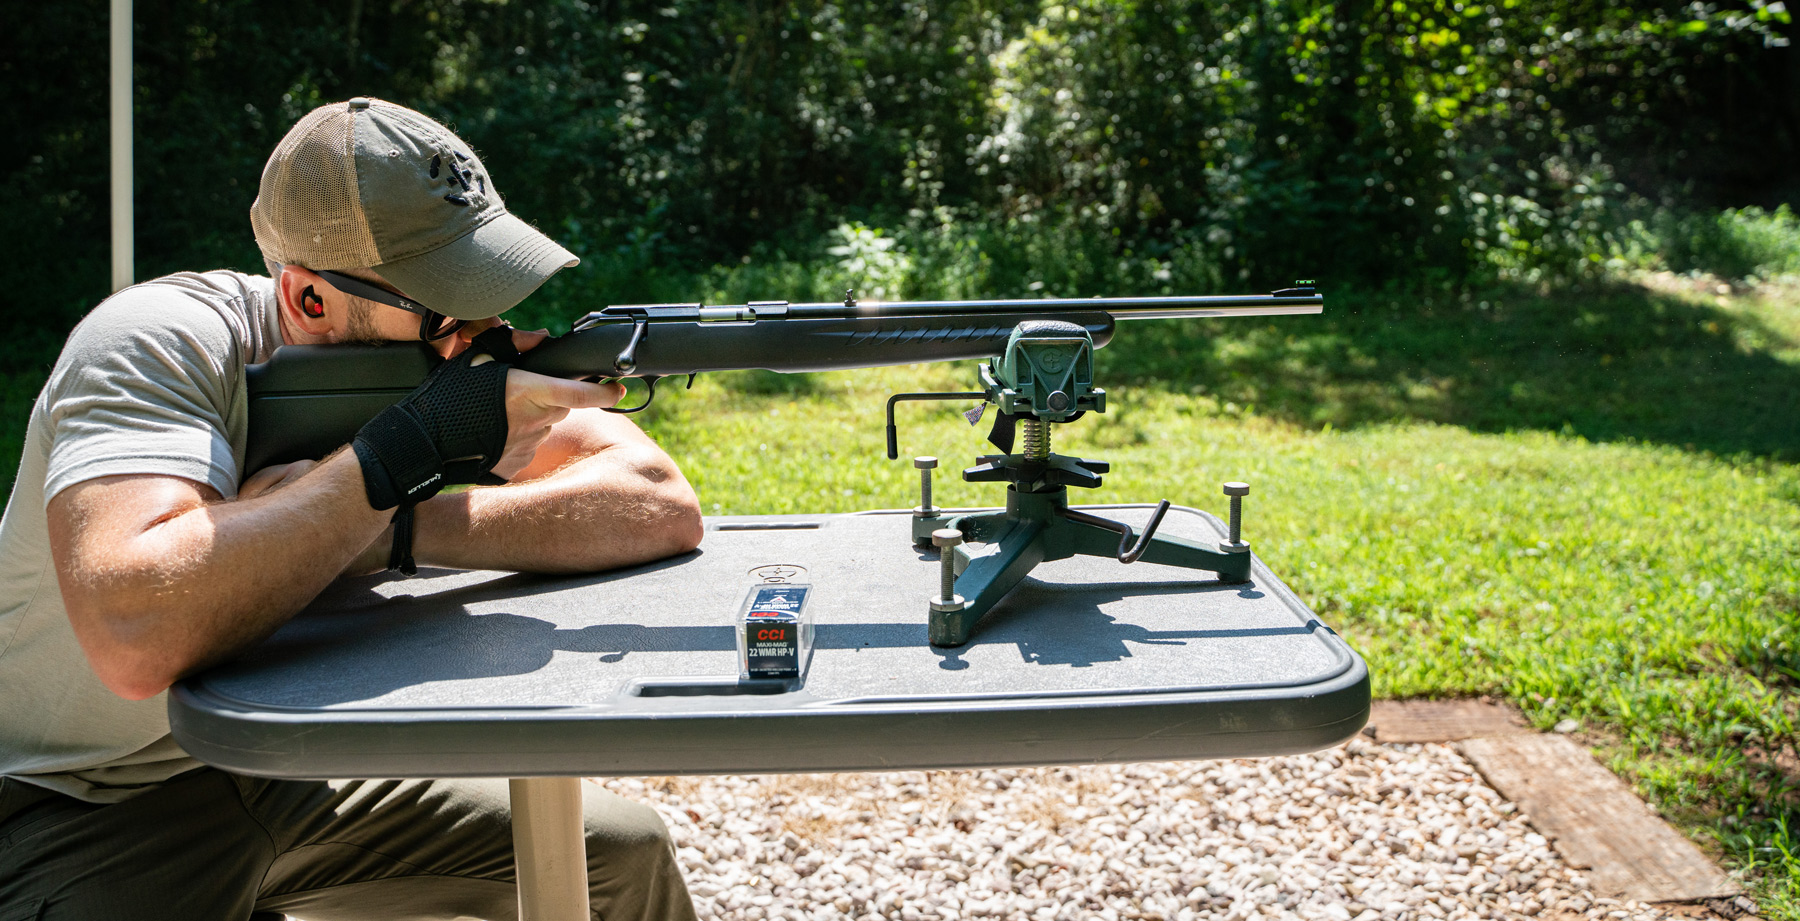 Shooting 22 WMR with a rifle